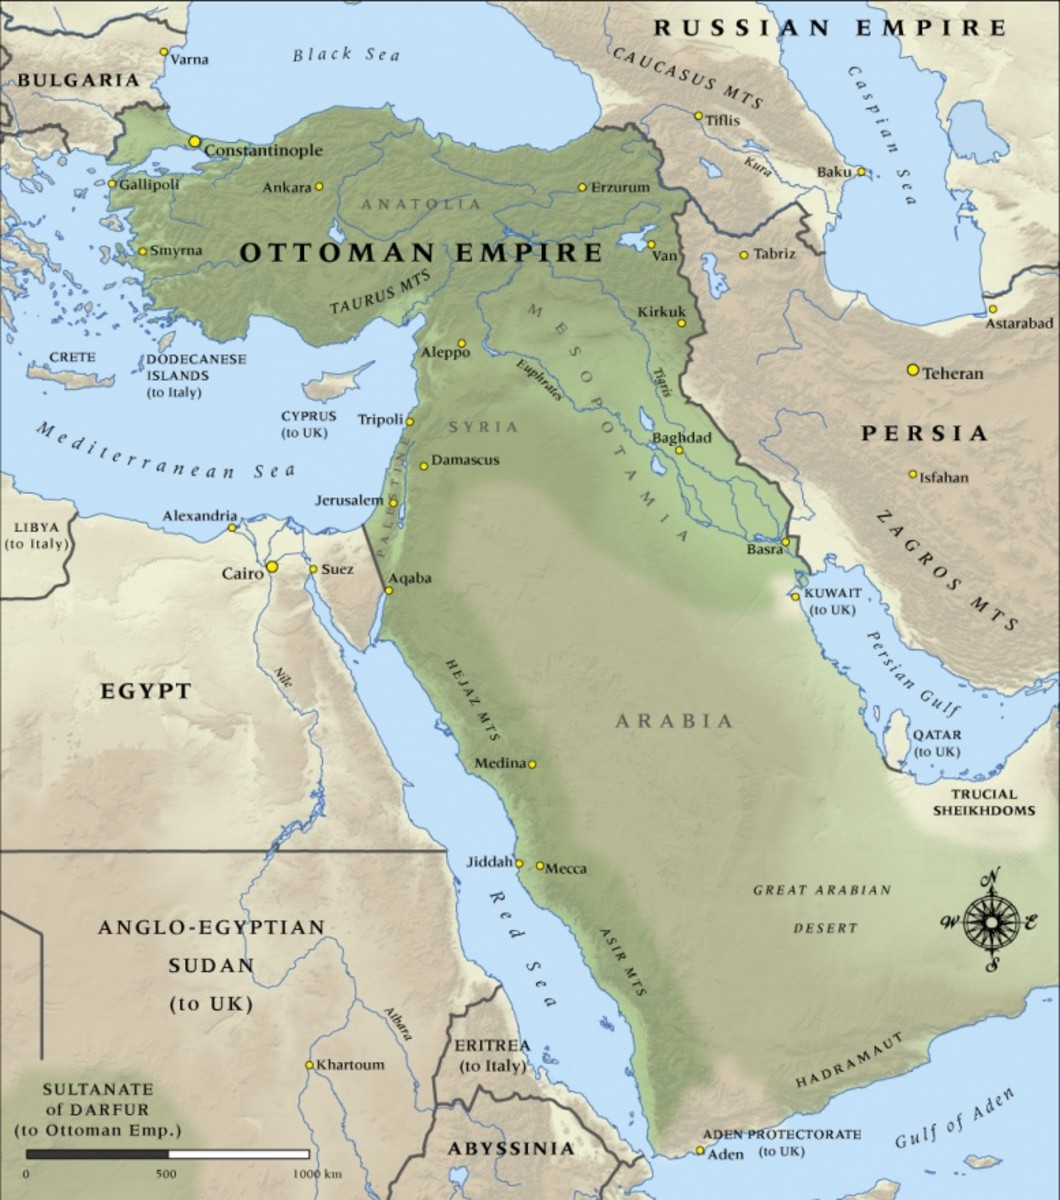 The Ottoman Empire of 1914 was something of a far cry of its previous size, but still commanded a respectably large amount of territory.